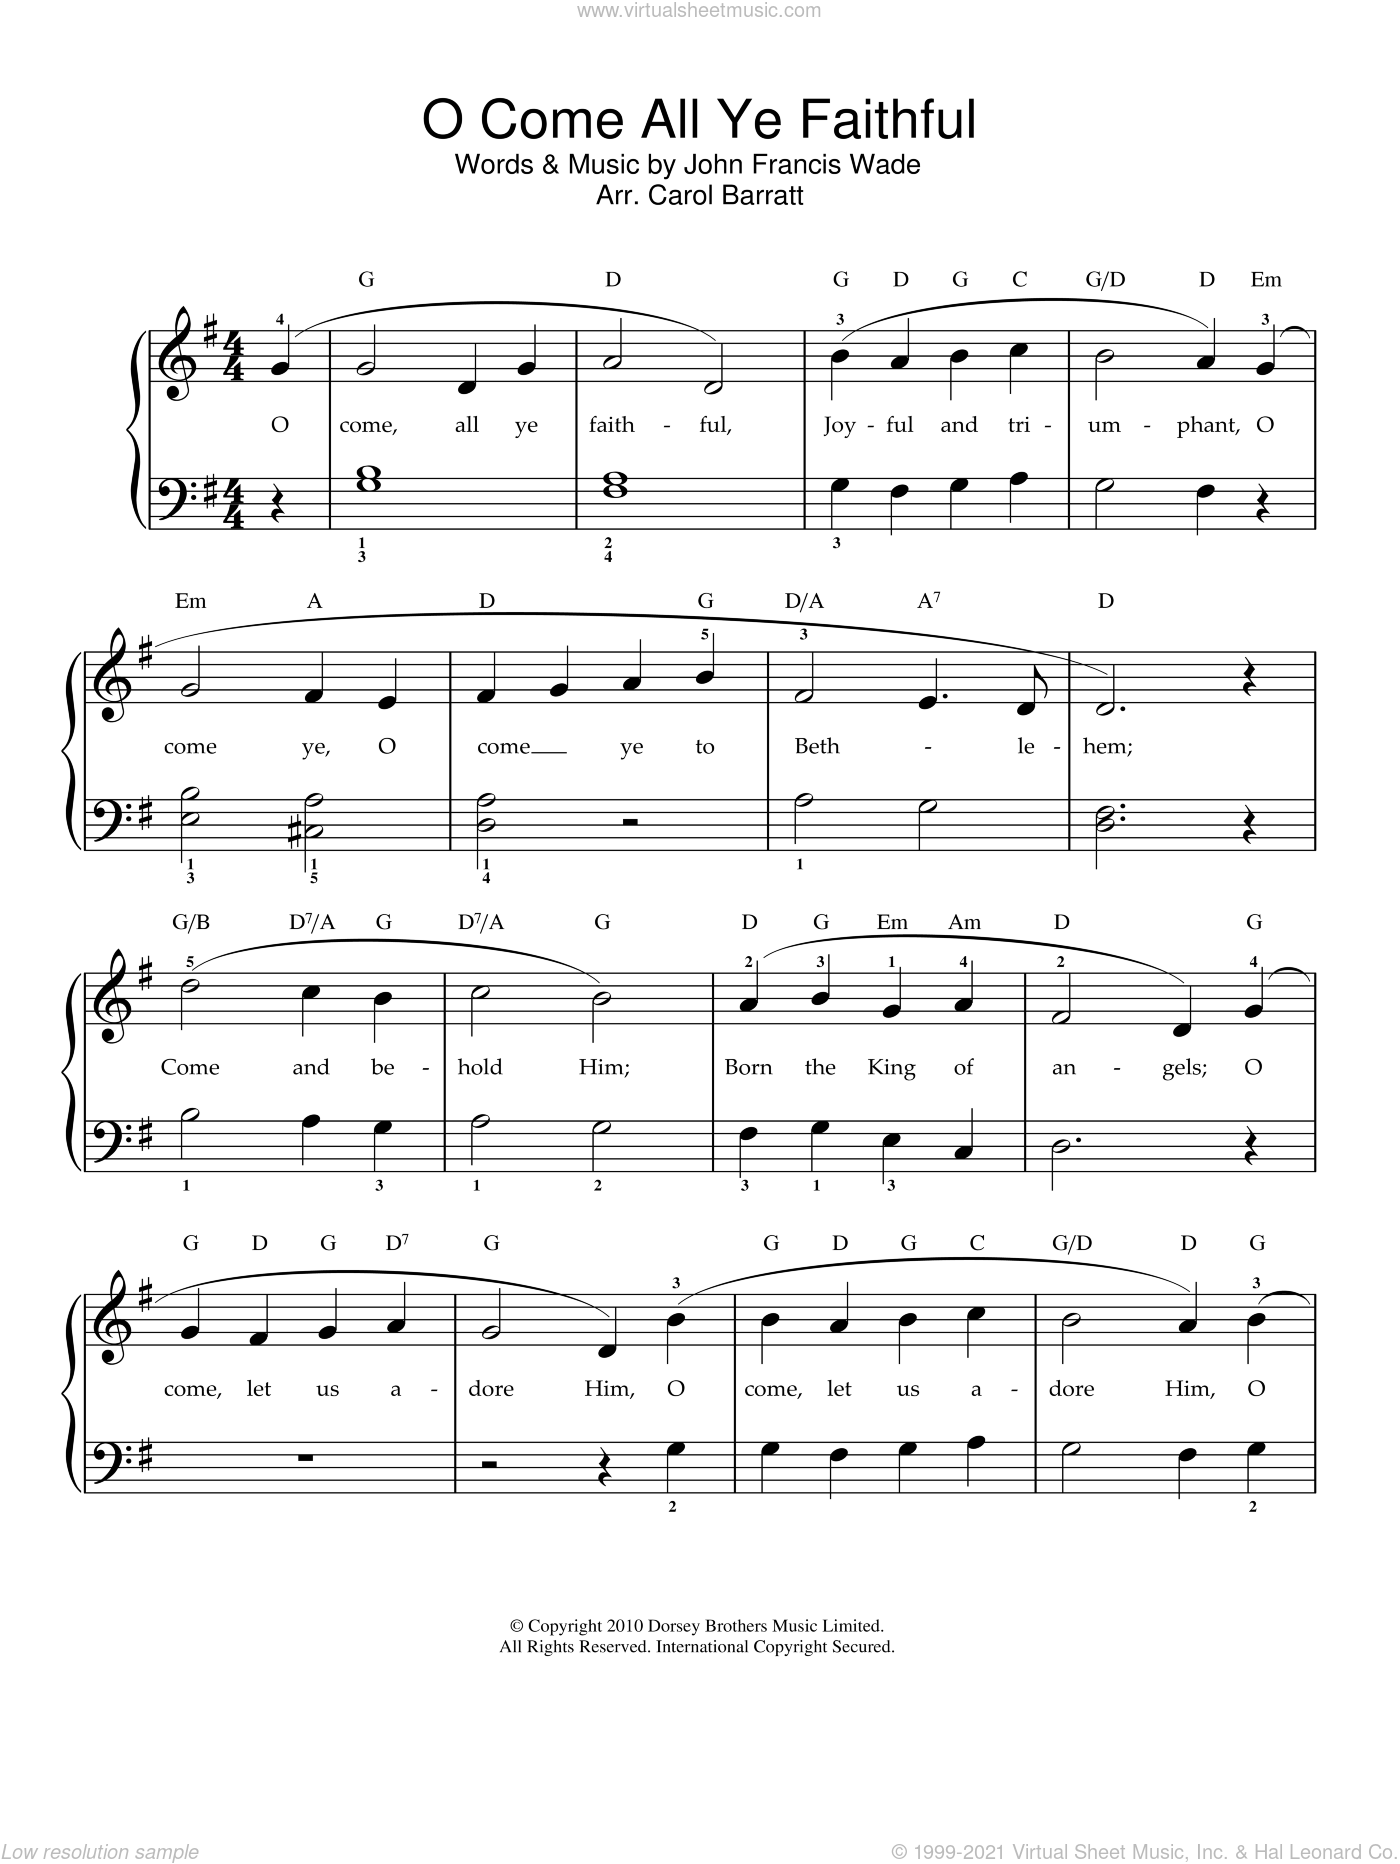 O Come, All Ye Faithful (Adeste Fideles) sheet music for voice and piano by John Francis Wade